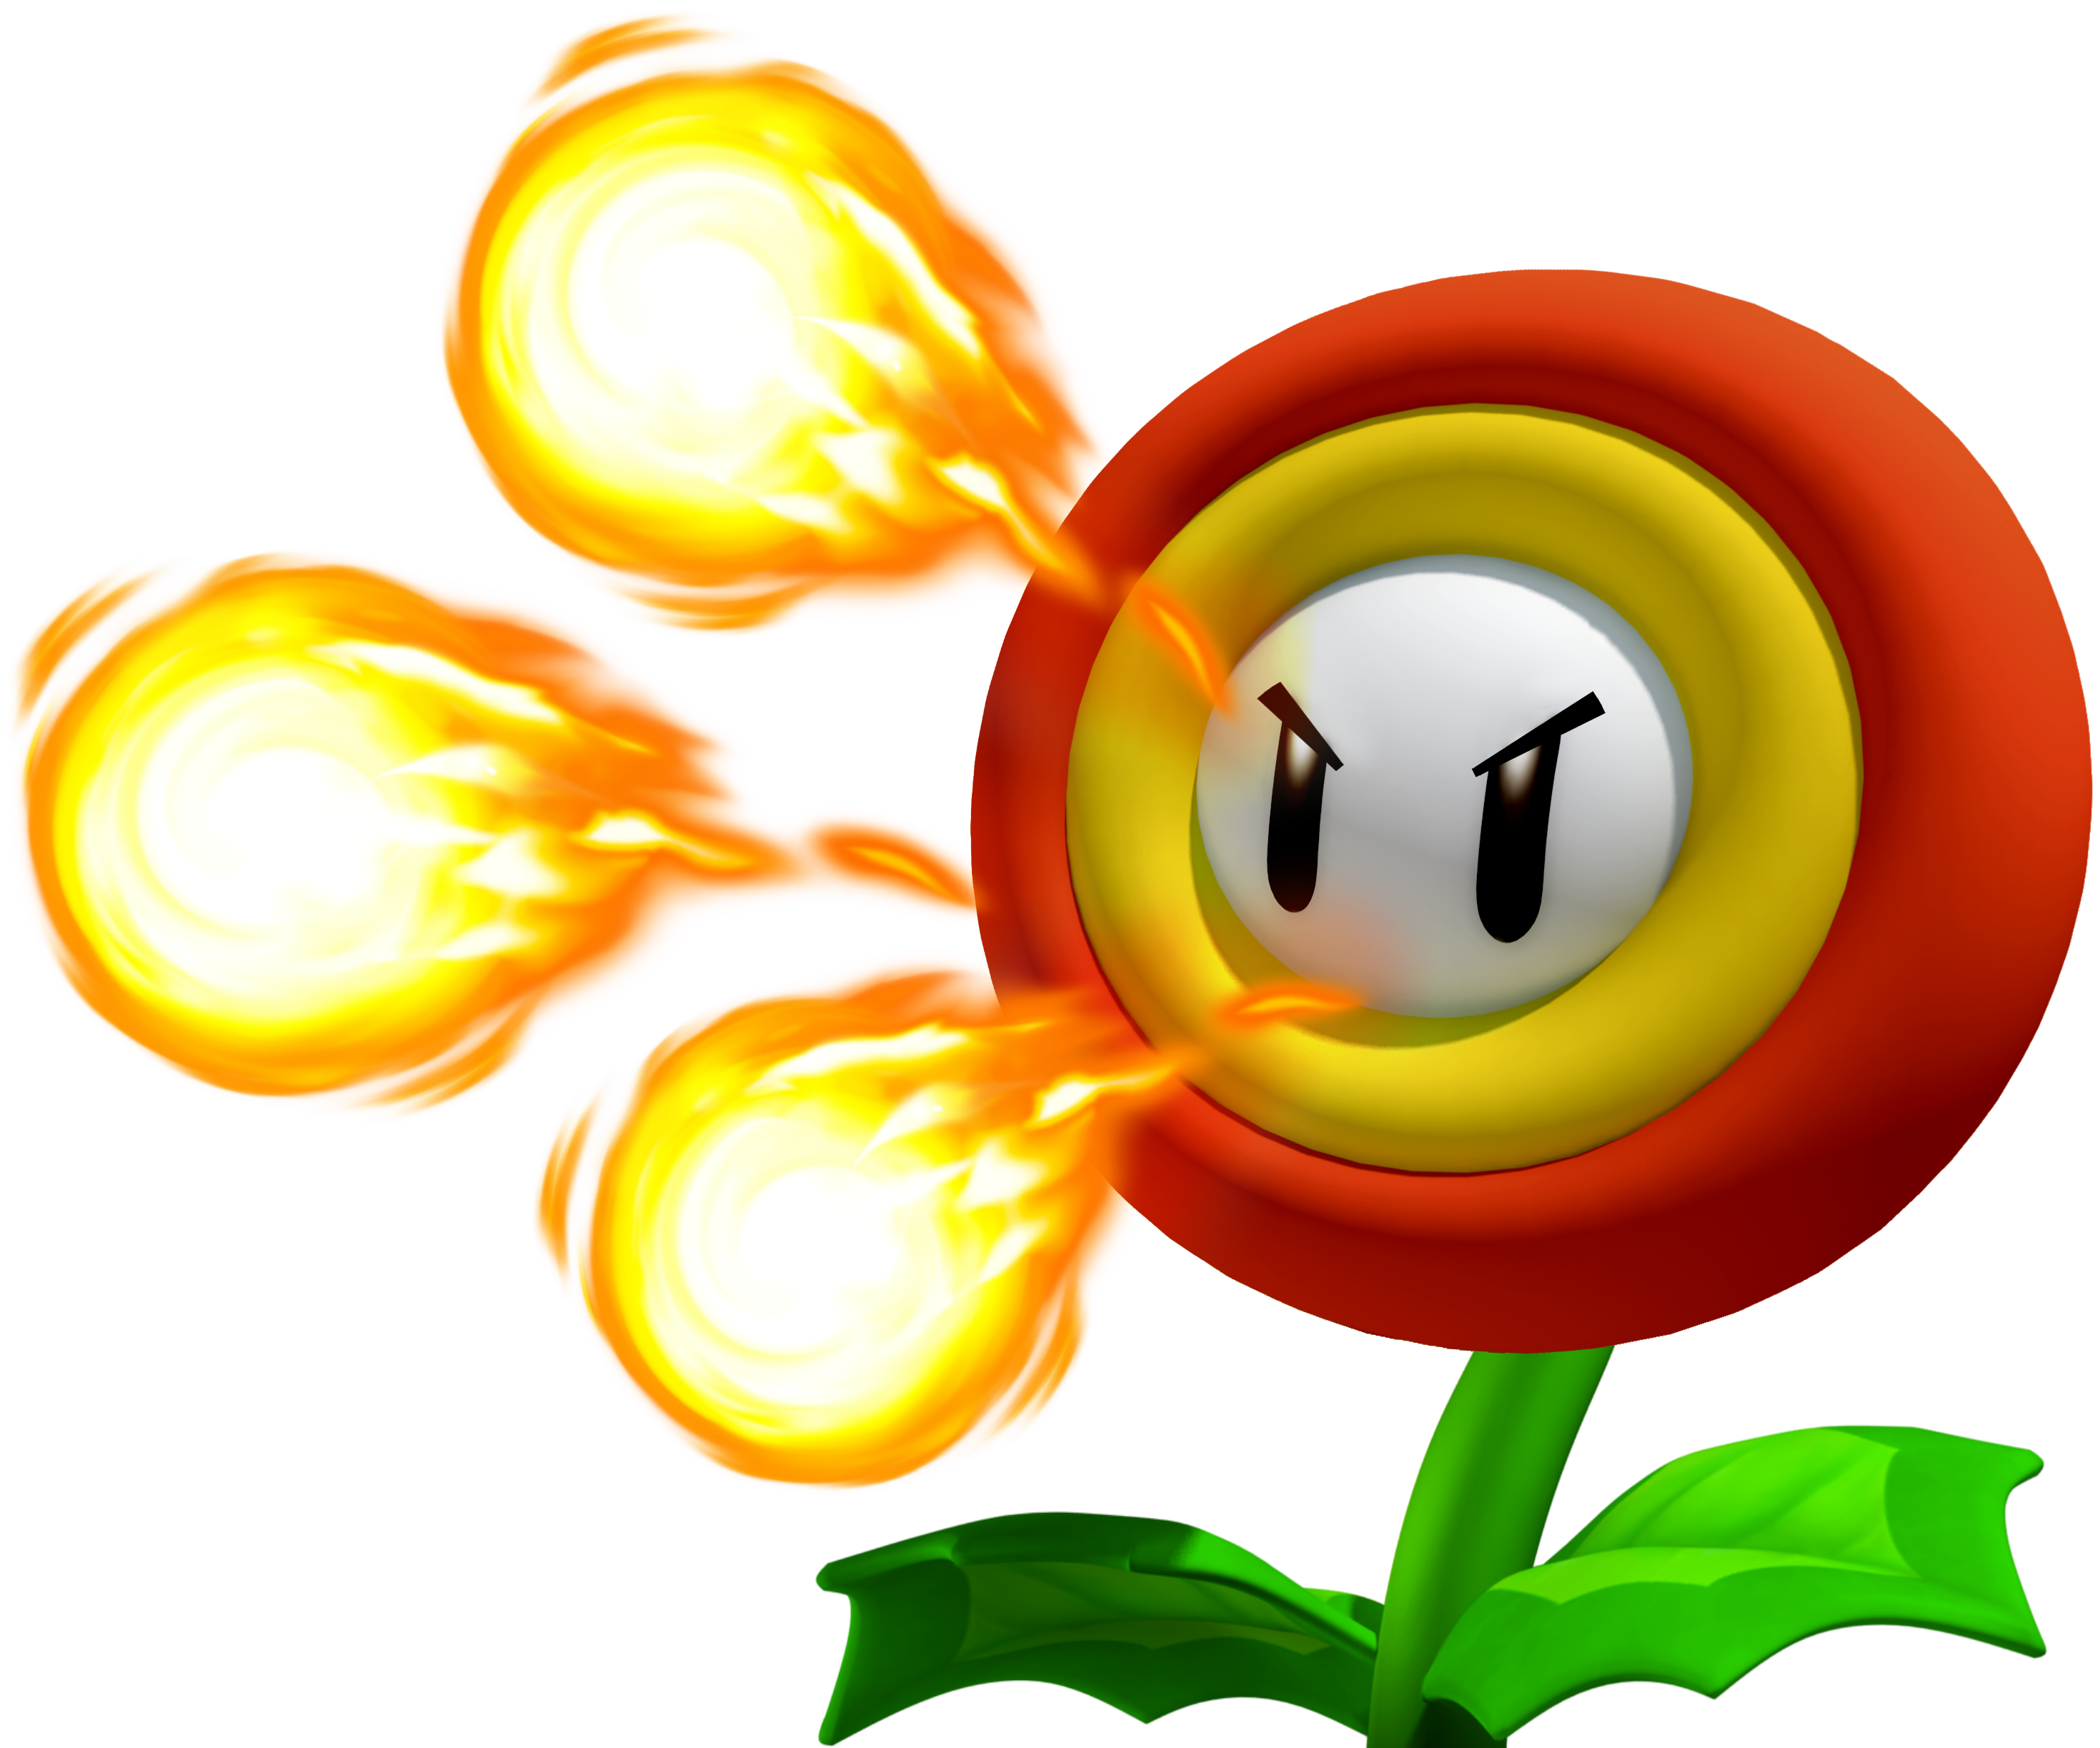 Fire flower png. Image fake fighters of